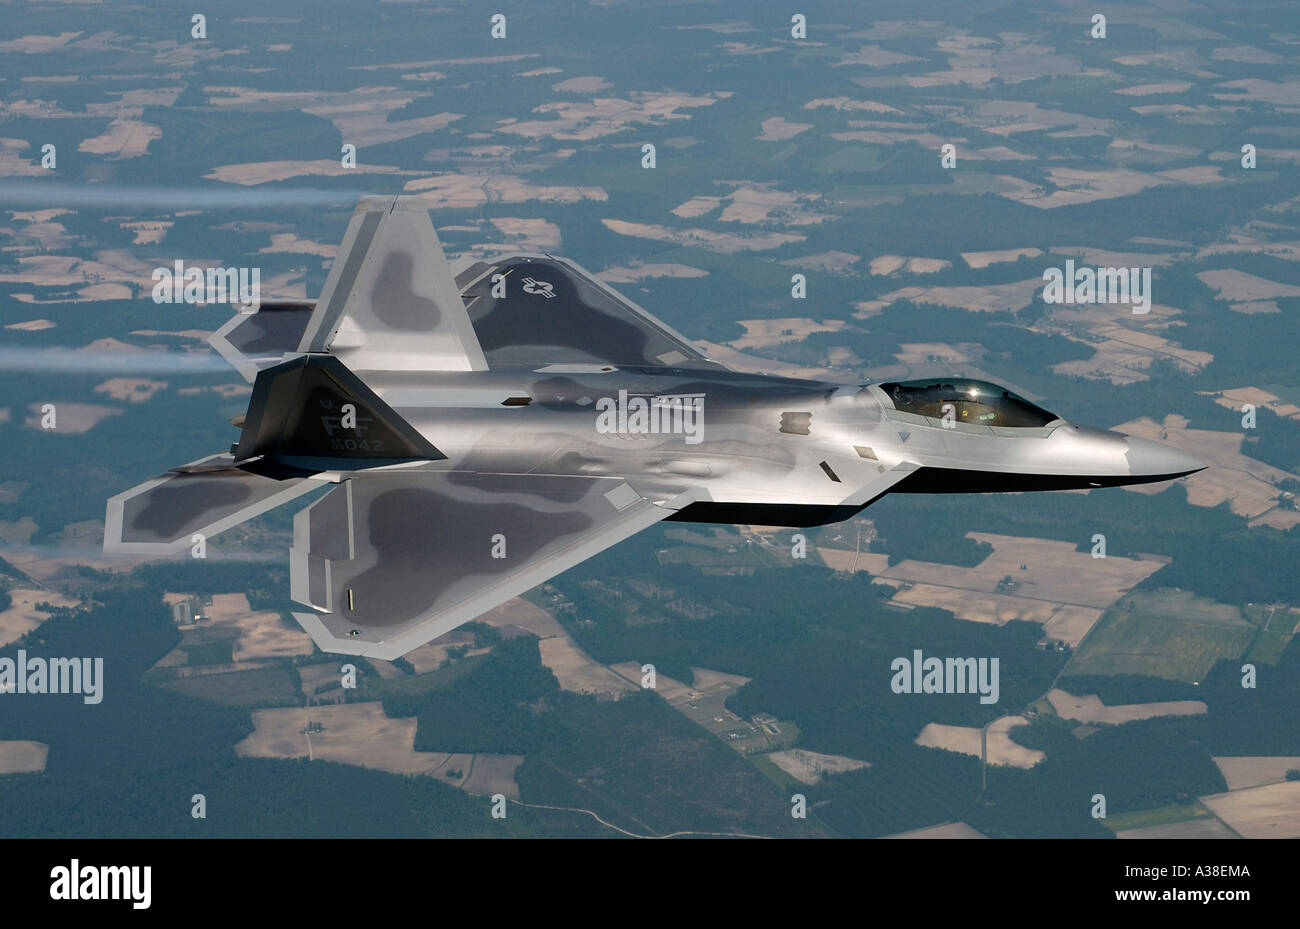 FA 22 Raptor fighter plane - Stock Image